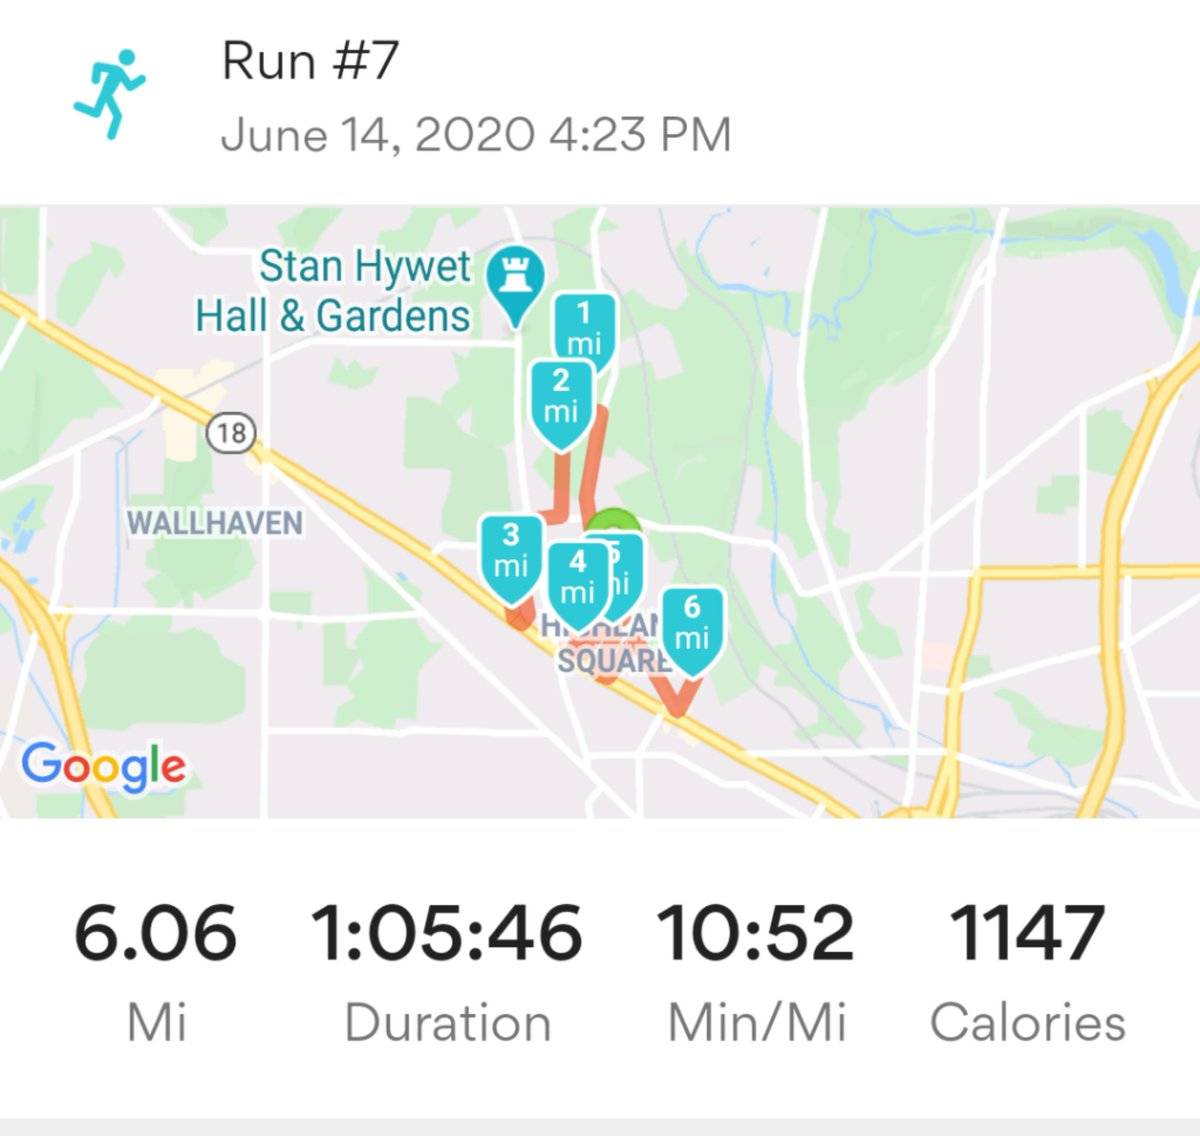 Two weeks ago, I started running again as part of my newly implemented Try Not to Die Too Soon program. Today, I clocked six (slow) miles for the first time in more than four years.   T-minus 14 weeks until the @AkronMarathon https://t.co/UjjNaTO4Rj